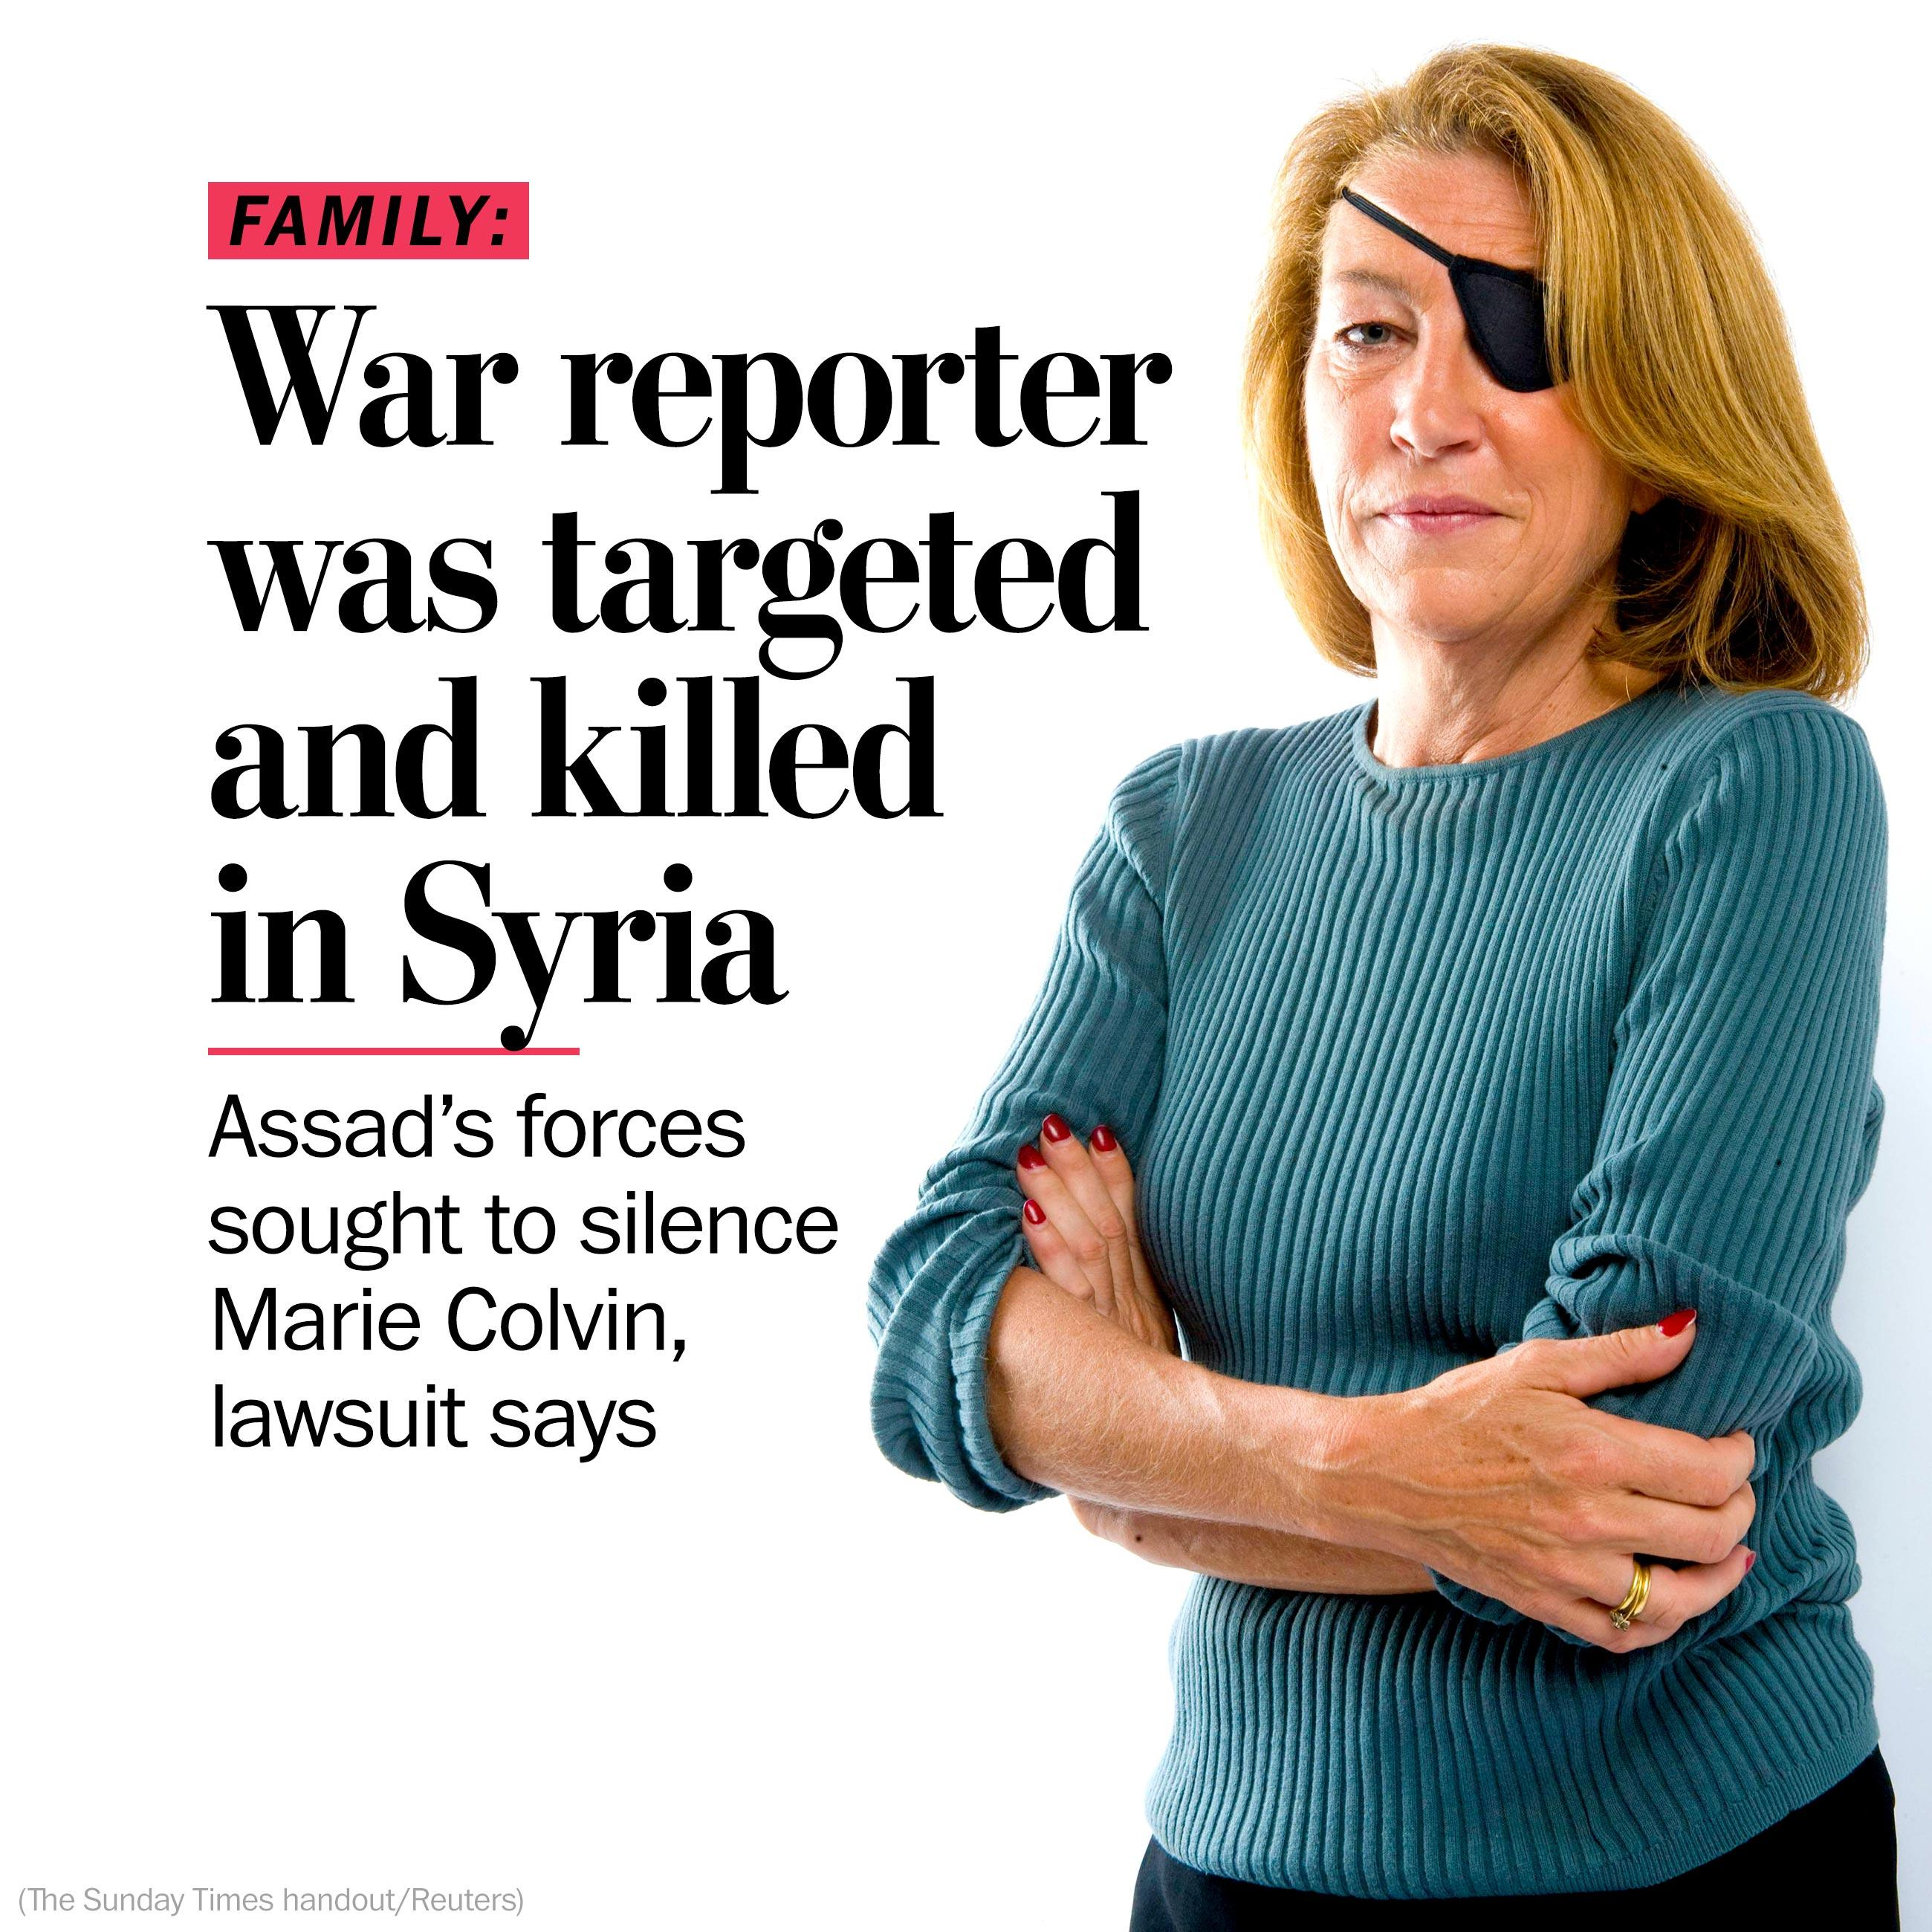 War reporter Marie Colvin was tracked, targeted and killed by Assad's forces, family says